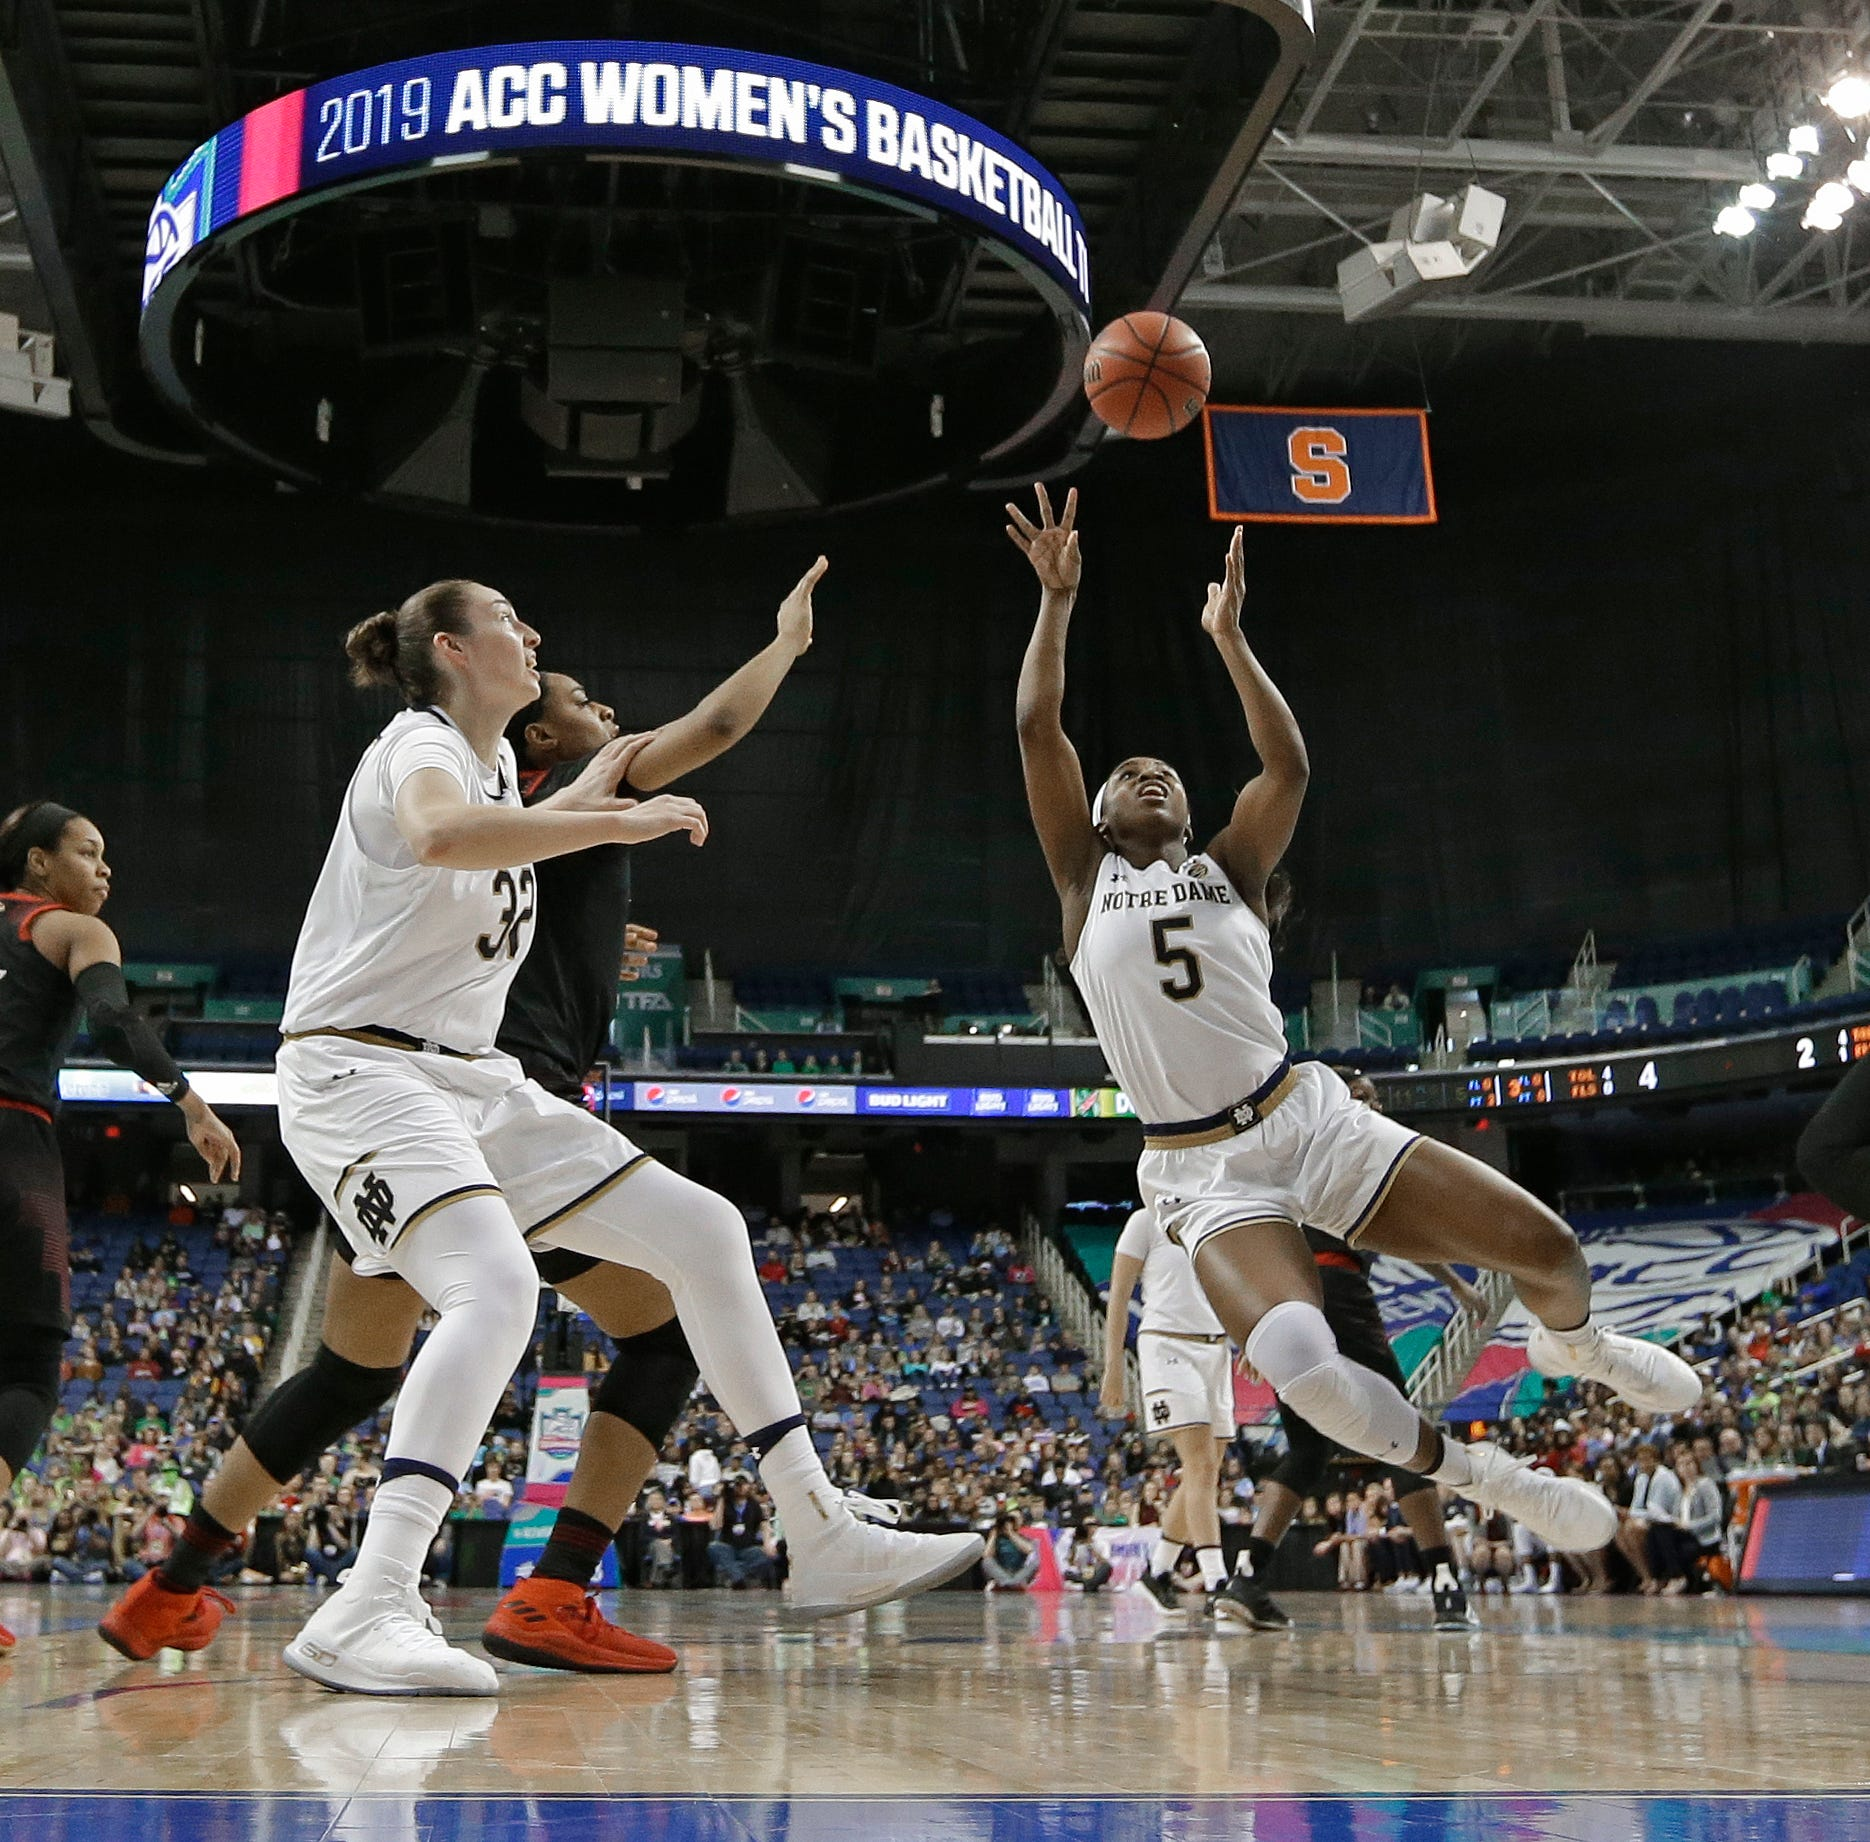 No. 4 Irish women's basketball beats No. 3 Louisville to win ACC tournament